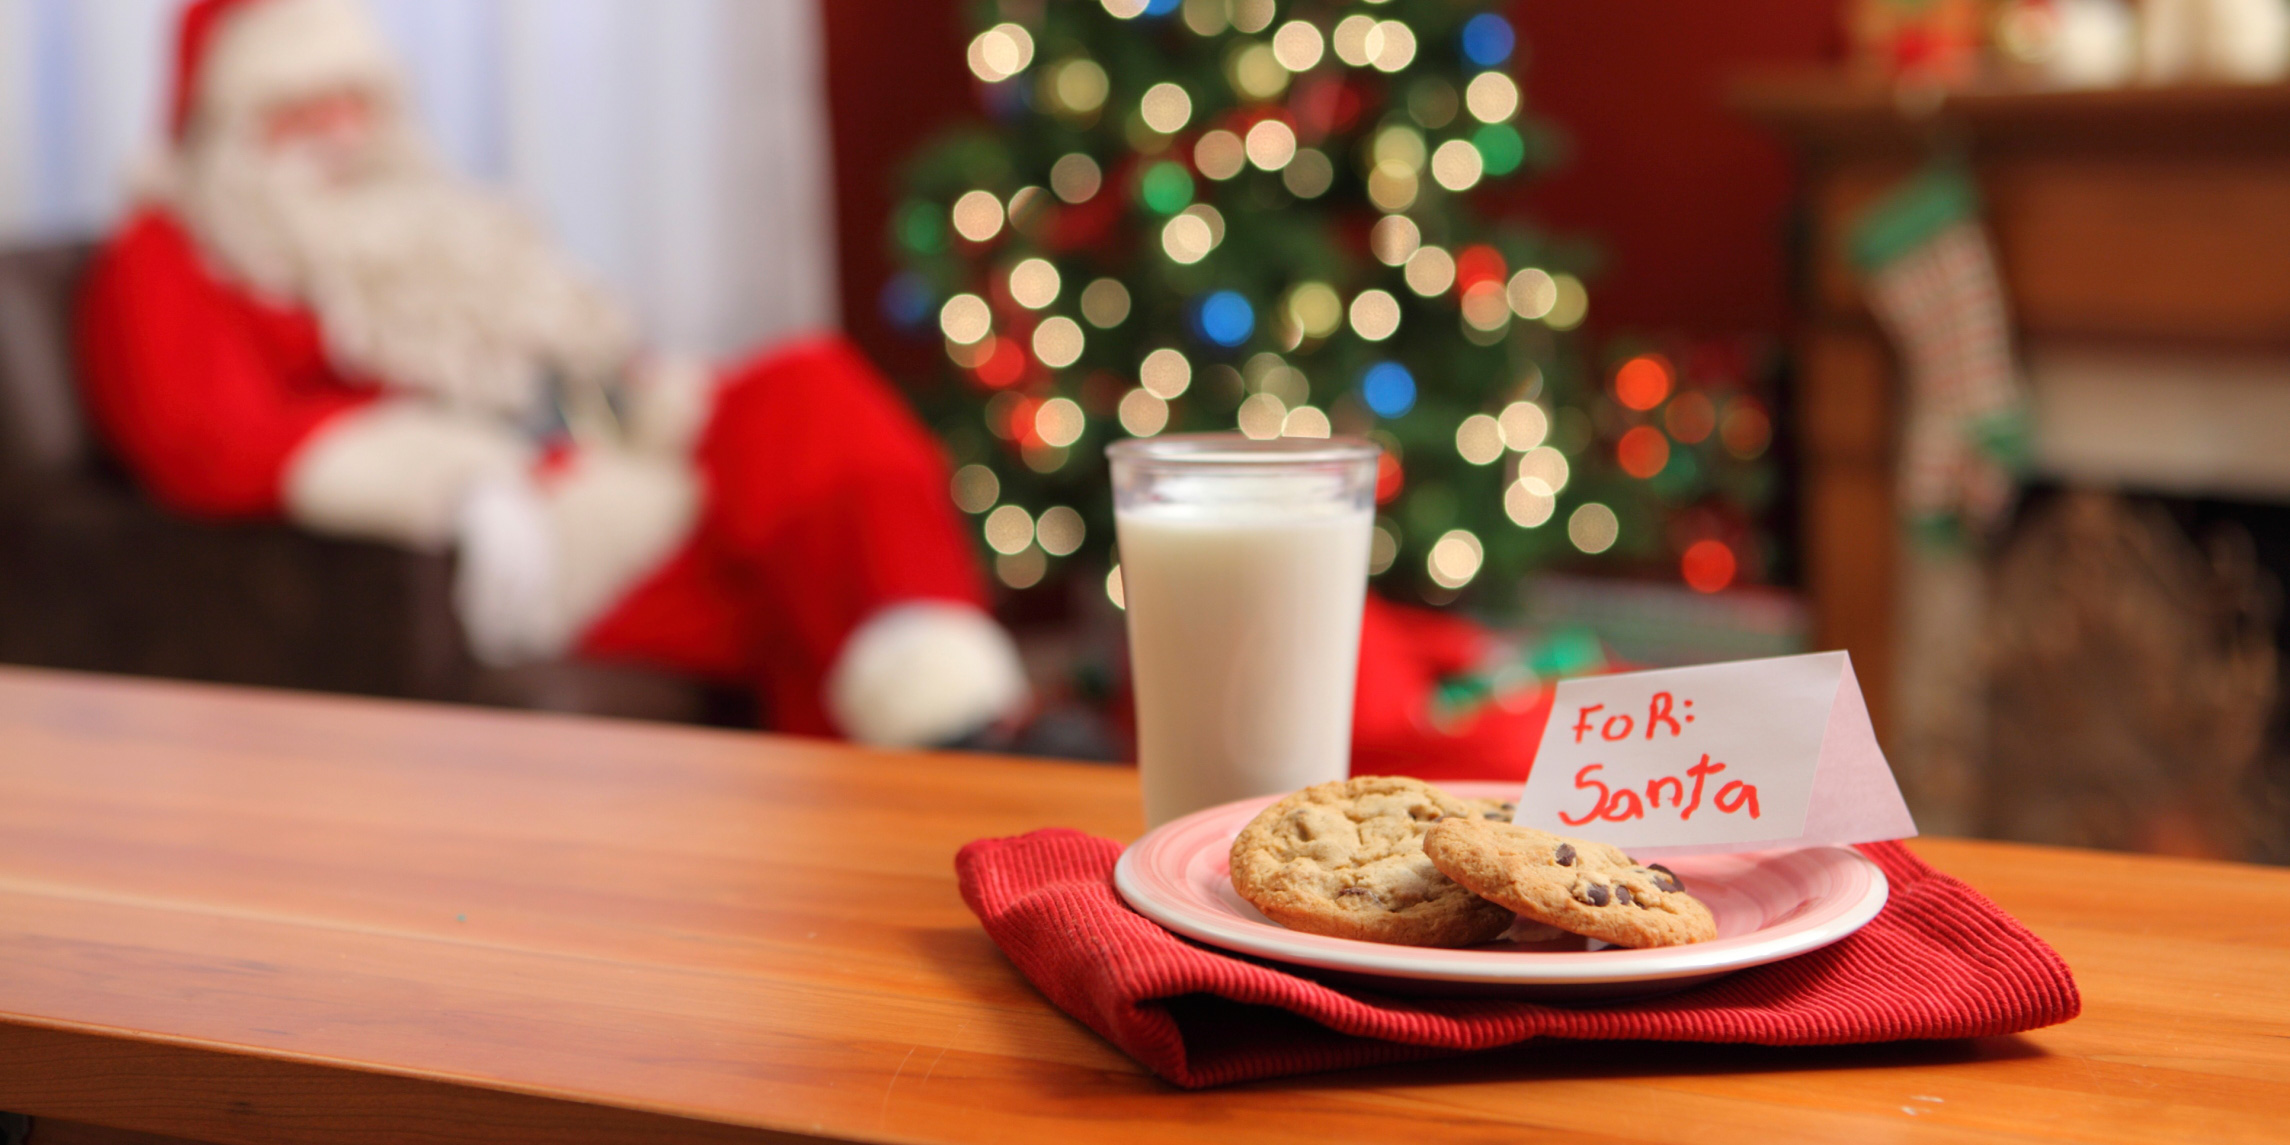 Milk-and-Cookies-for-Santa